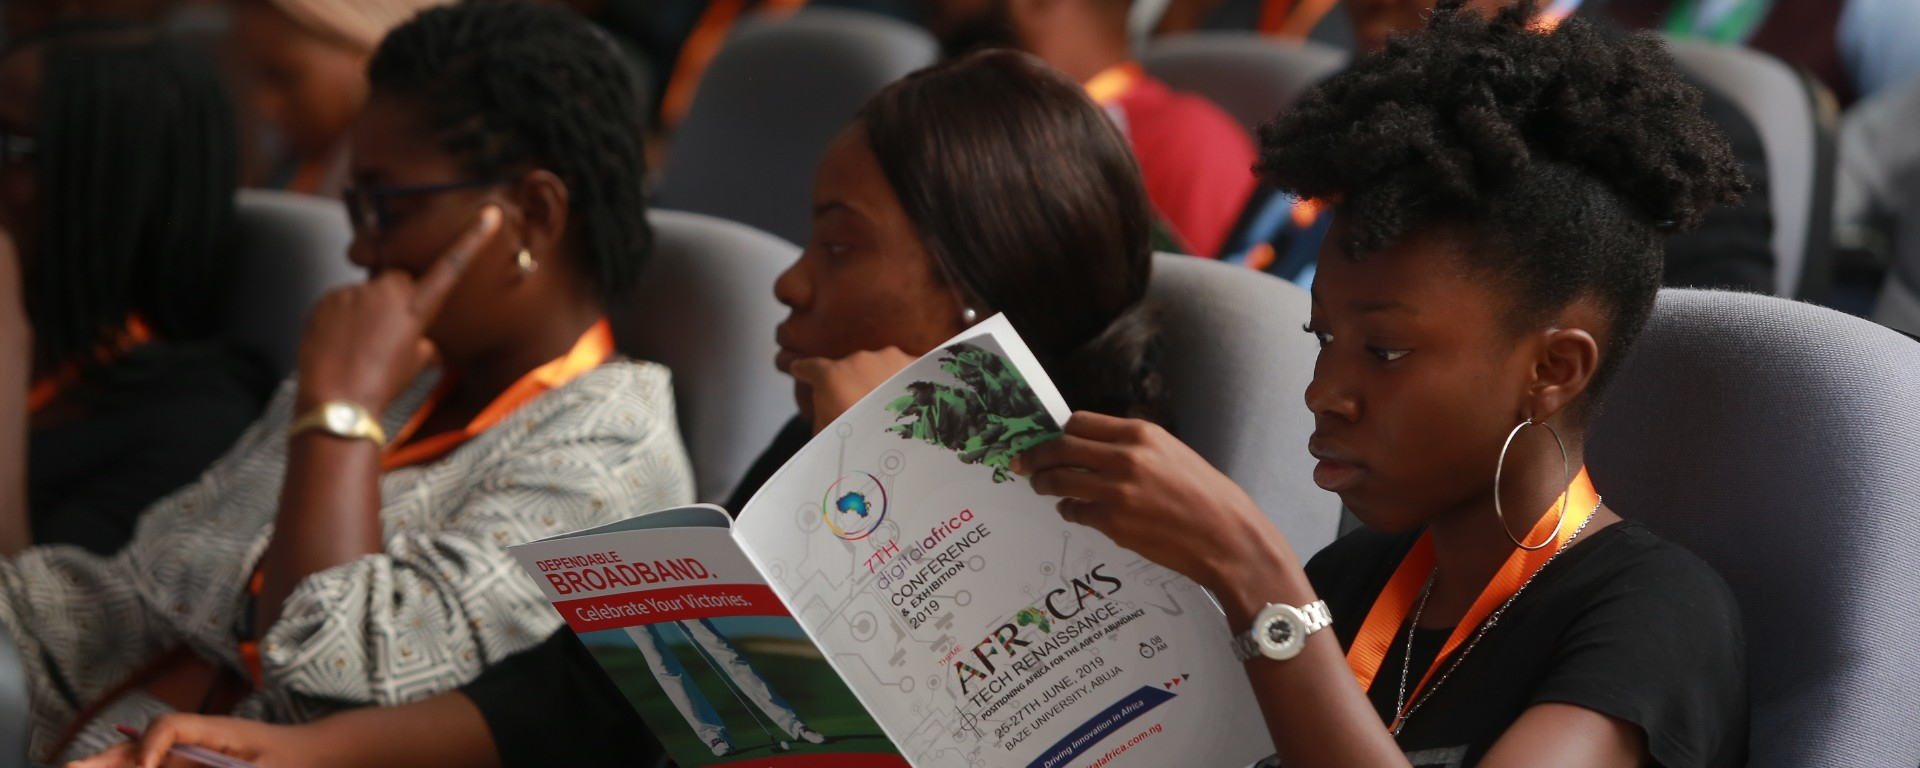 BII World - 5th Africa Bank 4.0 Summit Movemeback African event cover image